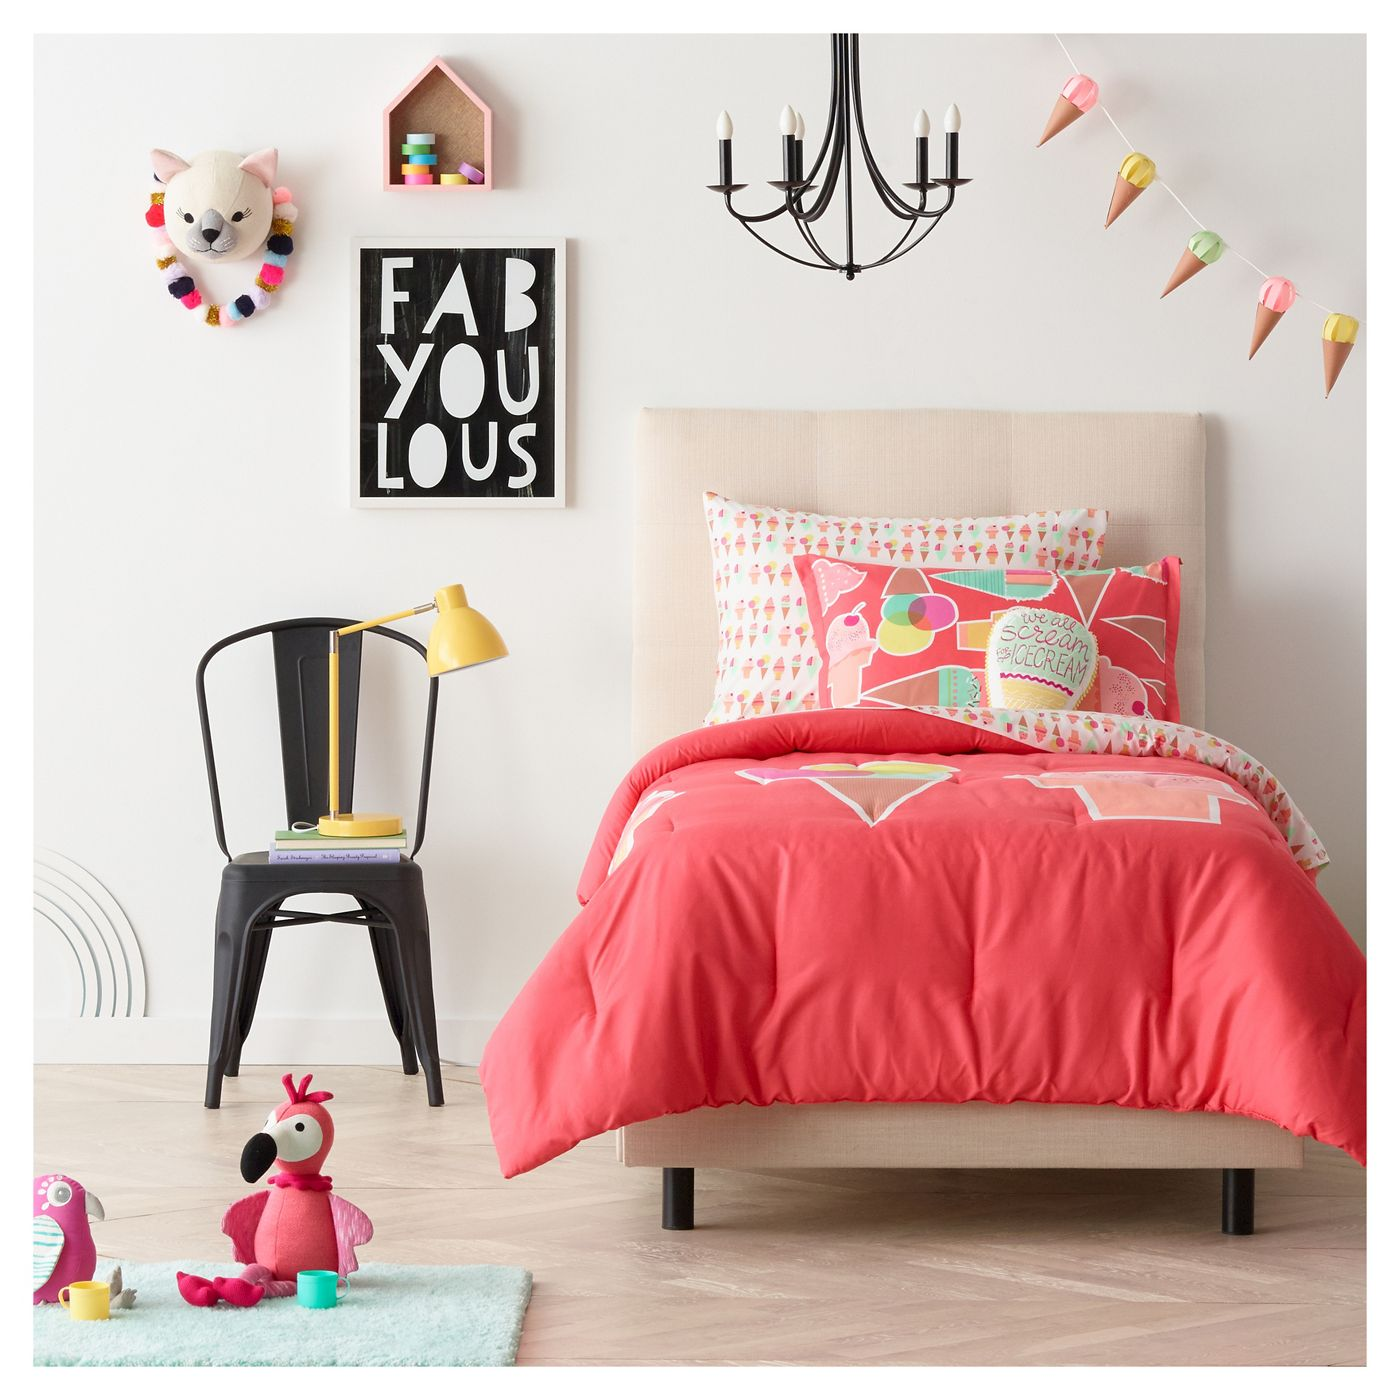 Trendy kid's room from Target